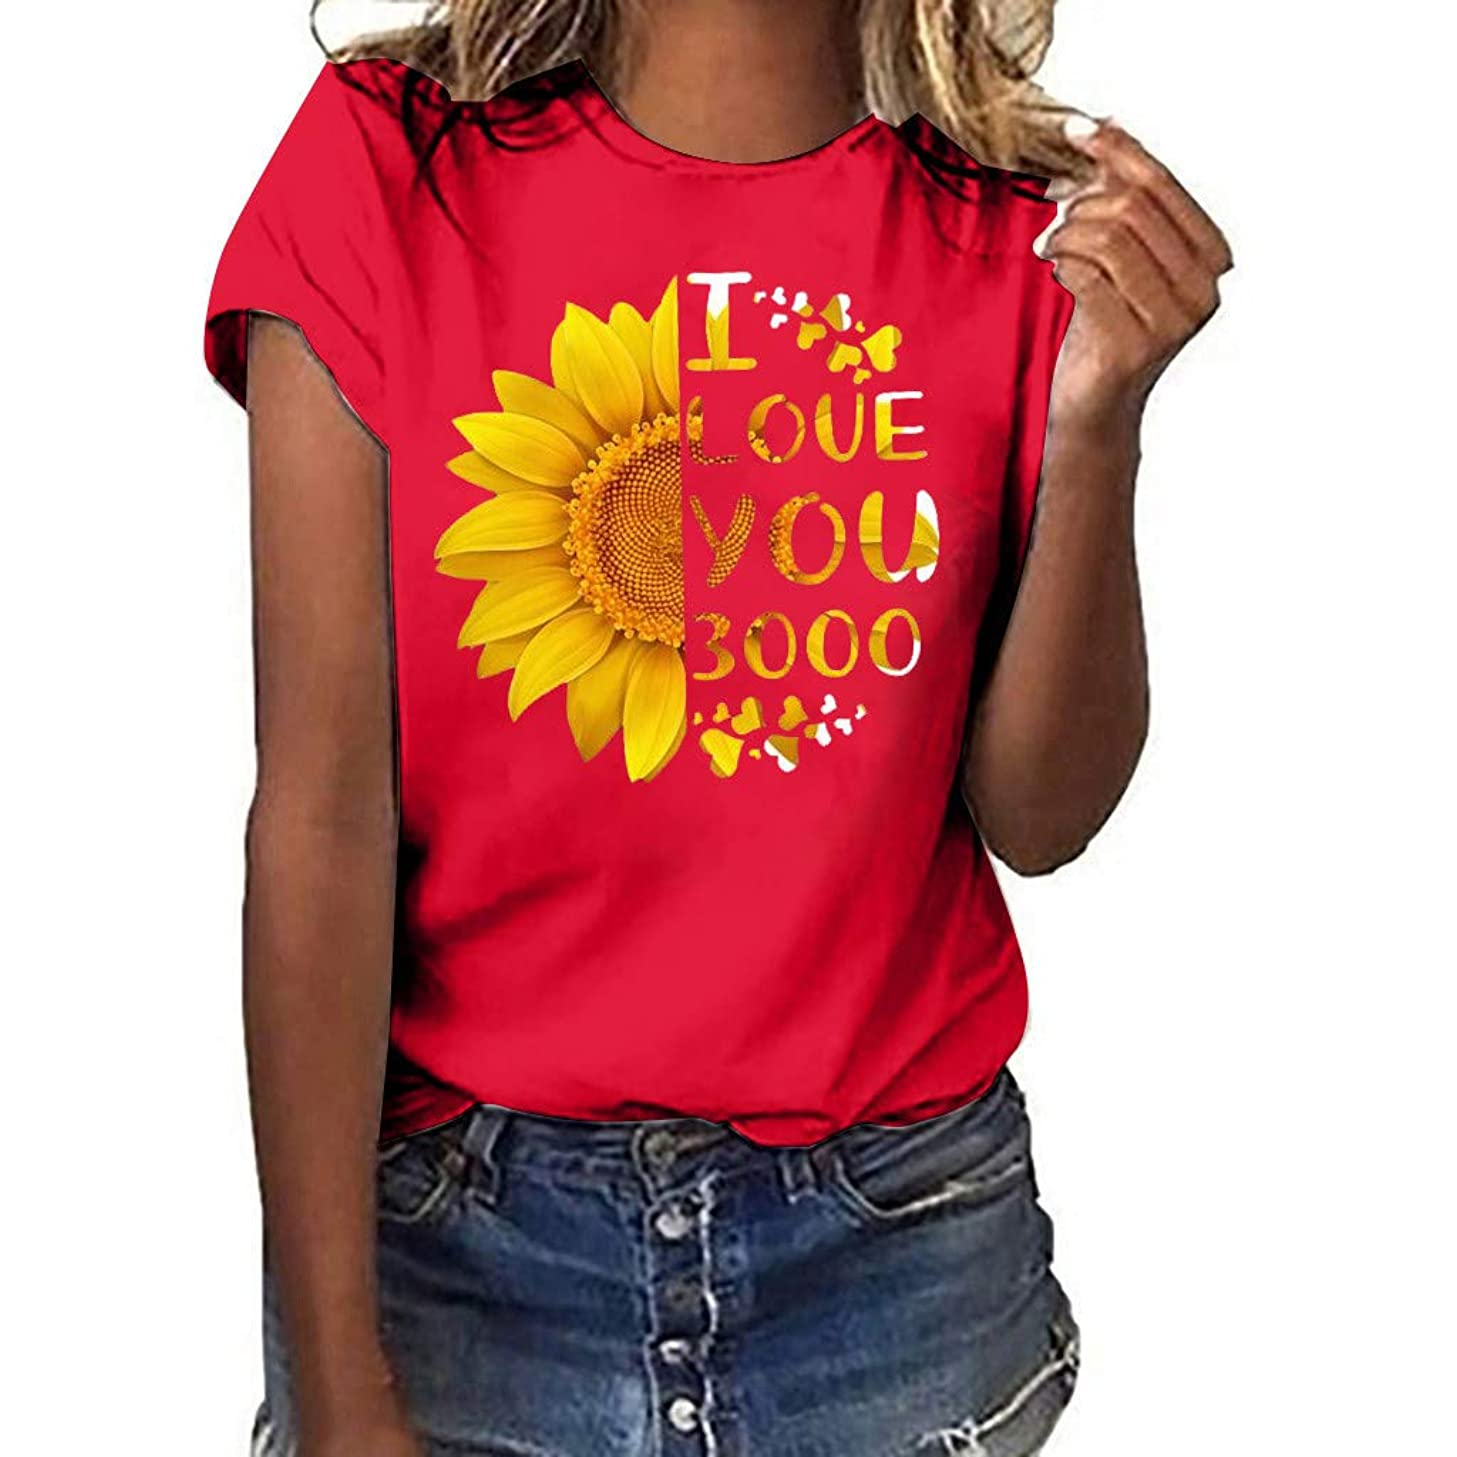 I Love You 3000 Women Blouse,Summer Women Casual Short Sleeve Solid Top Plus Size Print Shirt